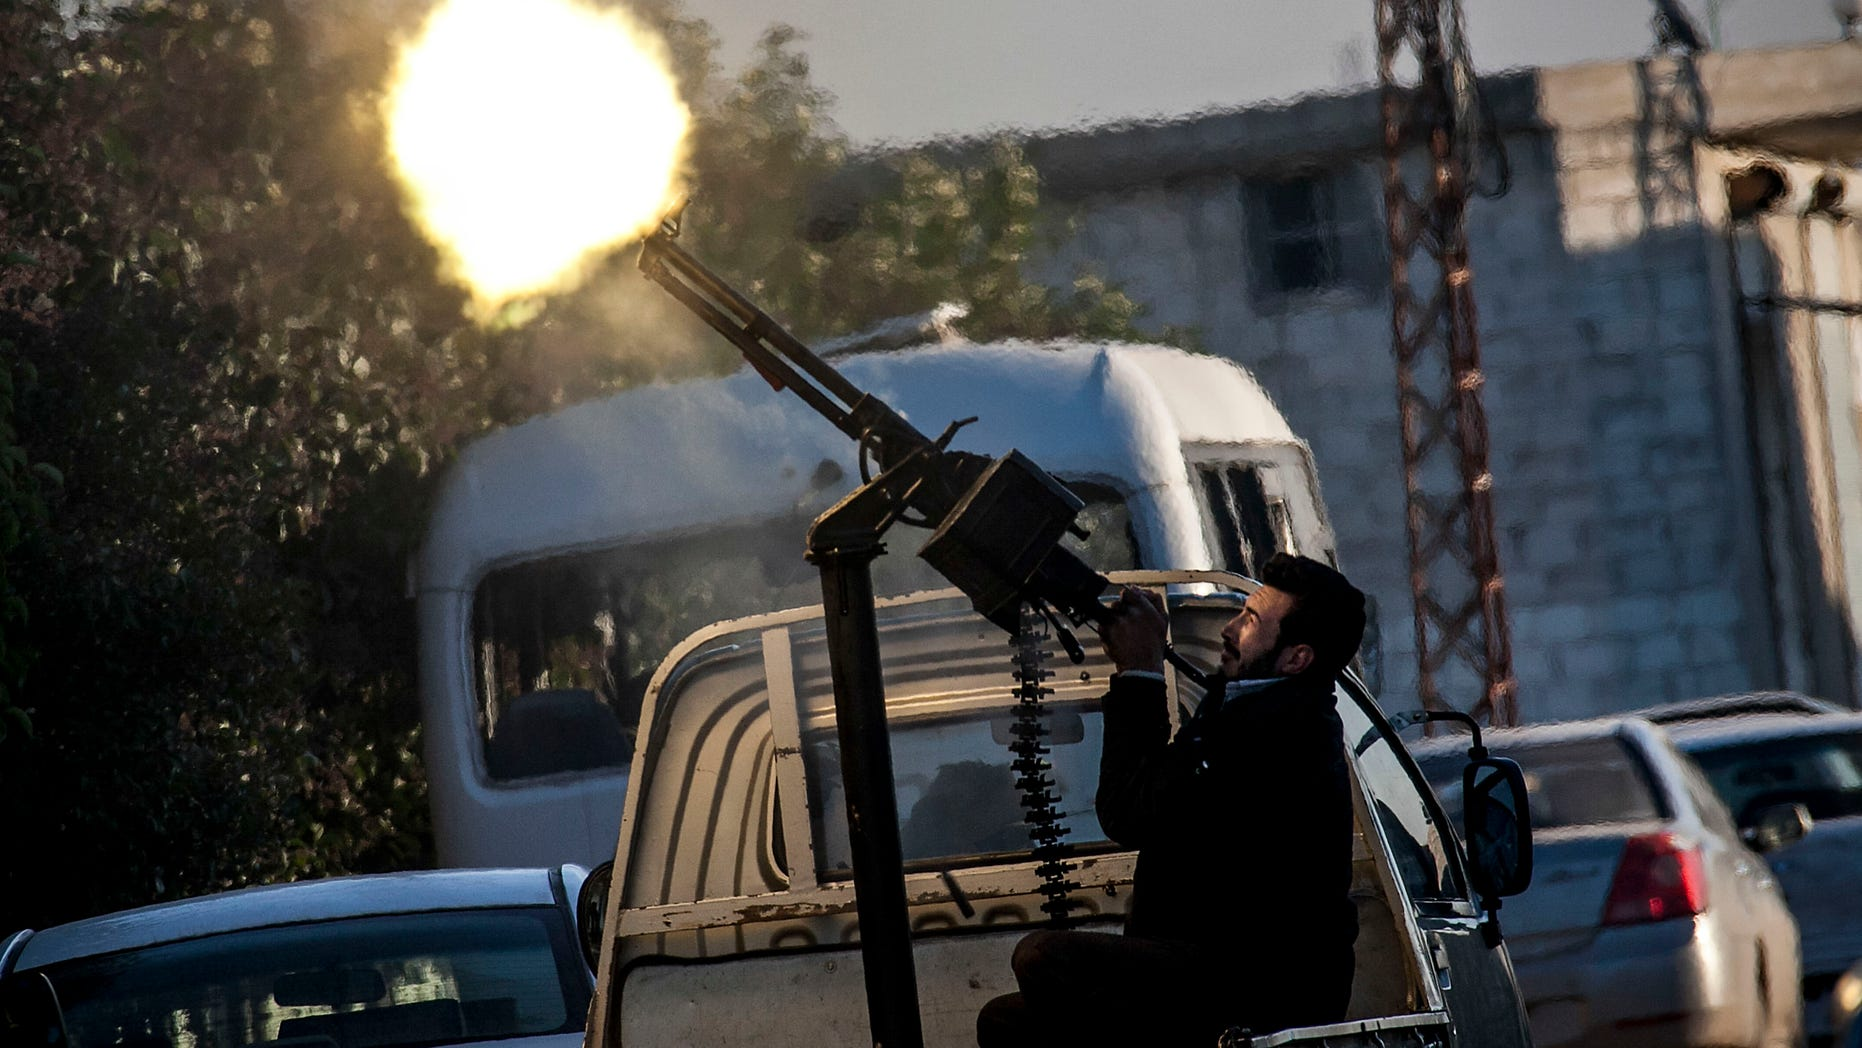 Dec. 15, 2012: In this photo, A Free Syrian Army fighter fires a weapon during heavy clashes with government forces at a academy besieged by rebels north of Aleppo, Syria.